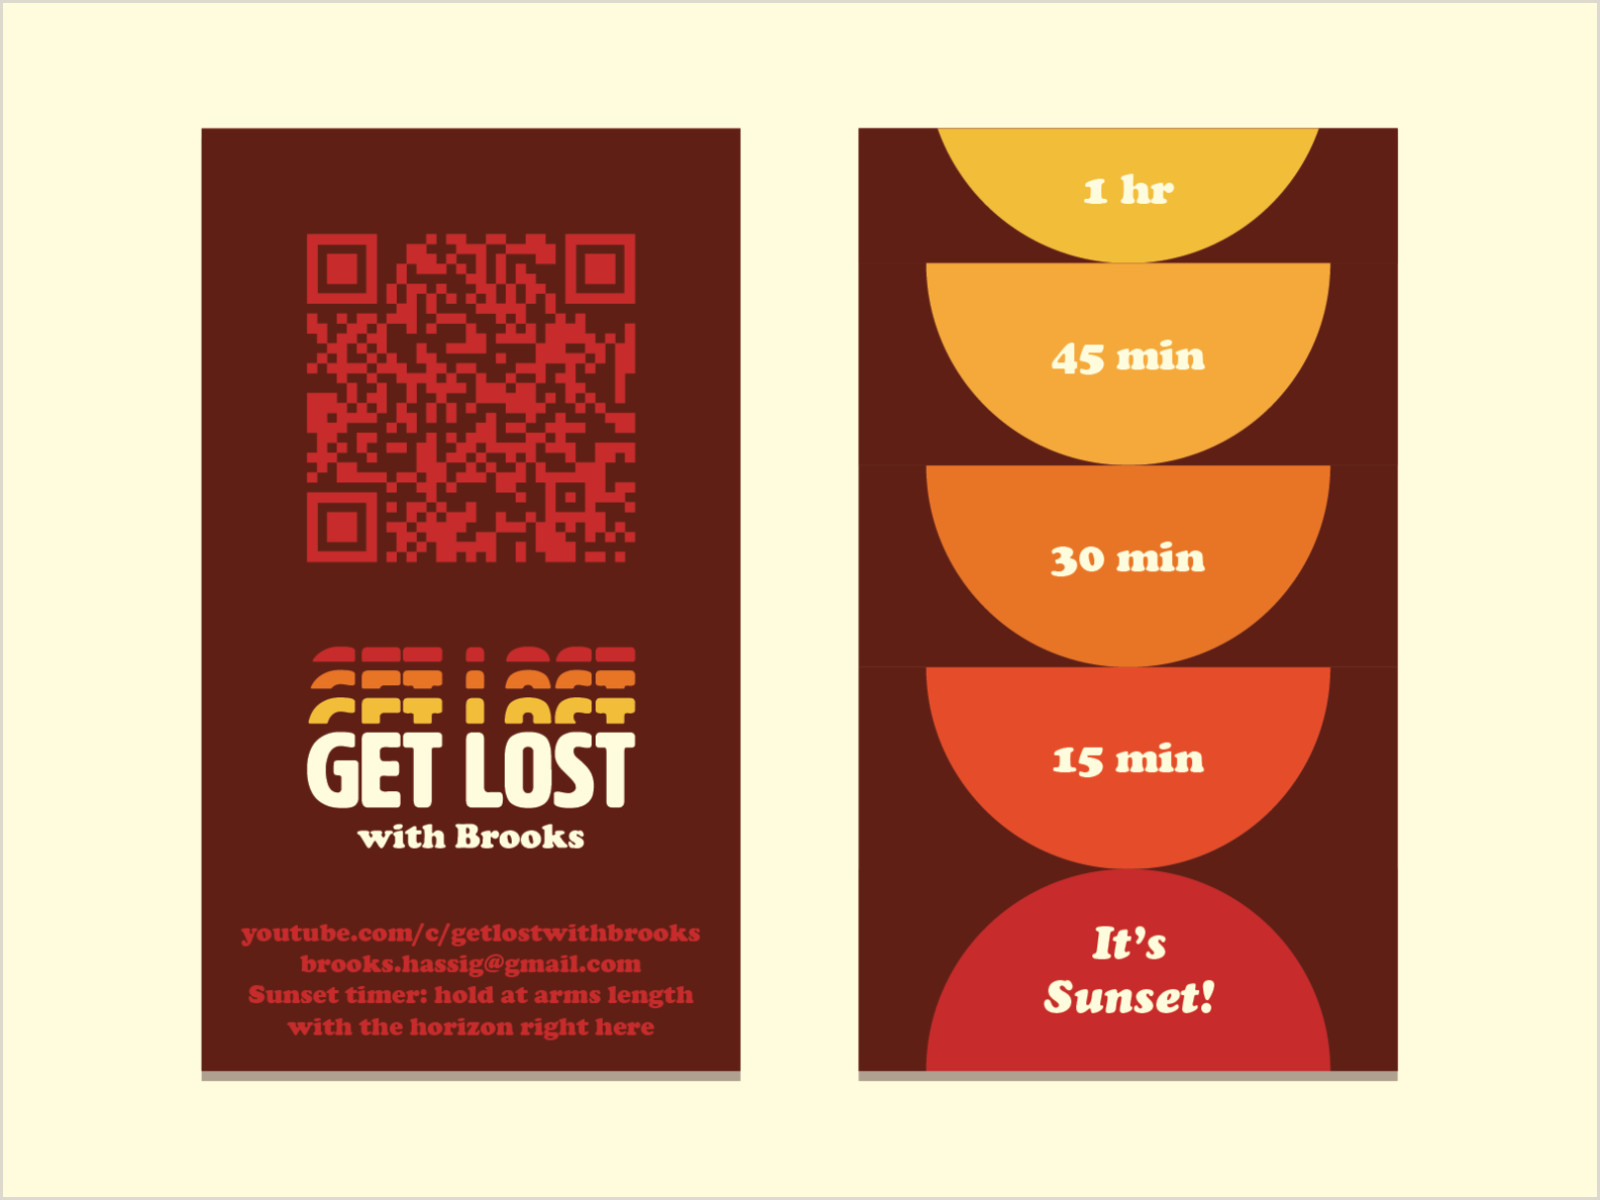 Buisness Cards Ideas Get Lost Business Cards By Brooks Hassig On Dribbble